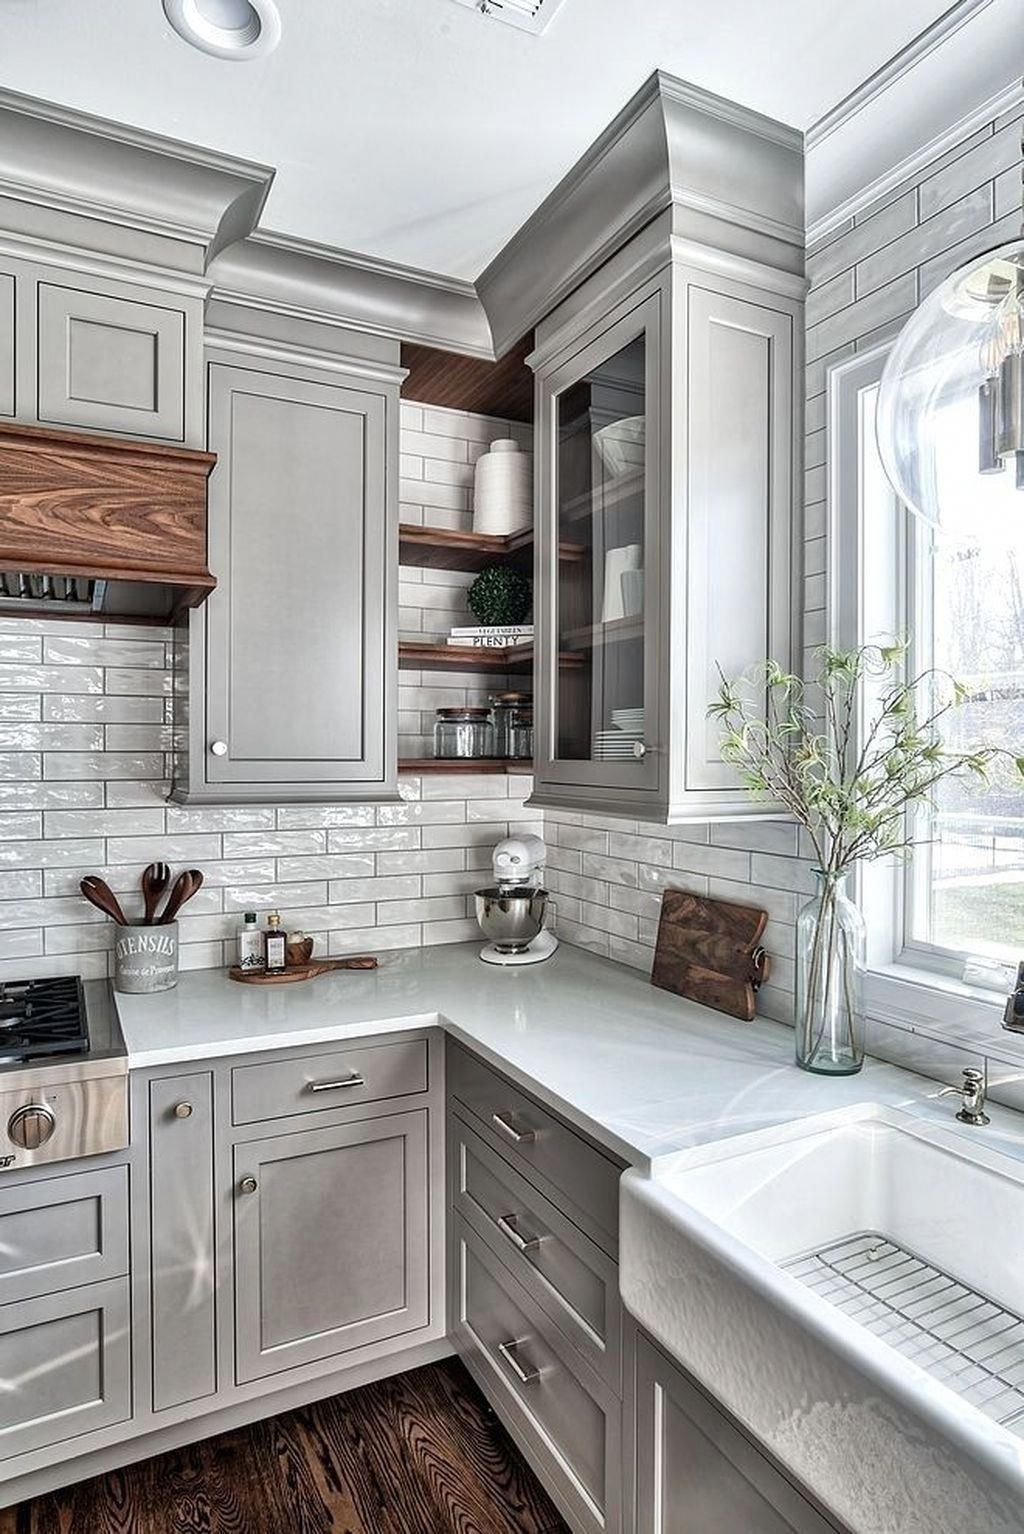 Explore Our Website For Additional Information On Kitchen Ideas It Is Actually An Exceptiona Kitchen Remodel Small Diy Kitchen Renovation Kitchen Renovation